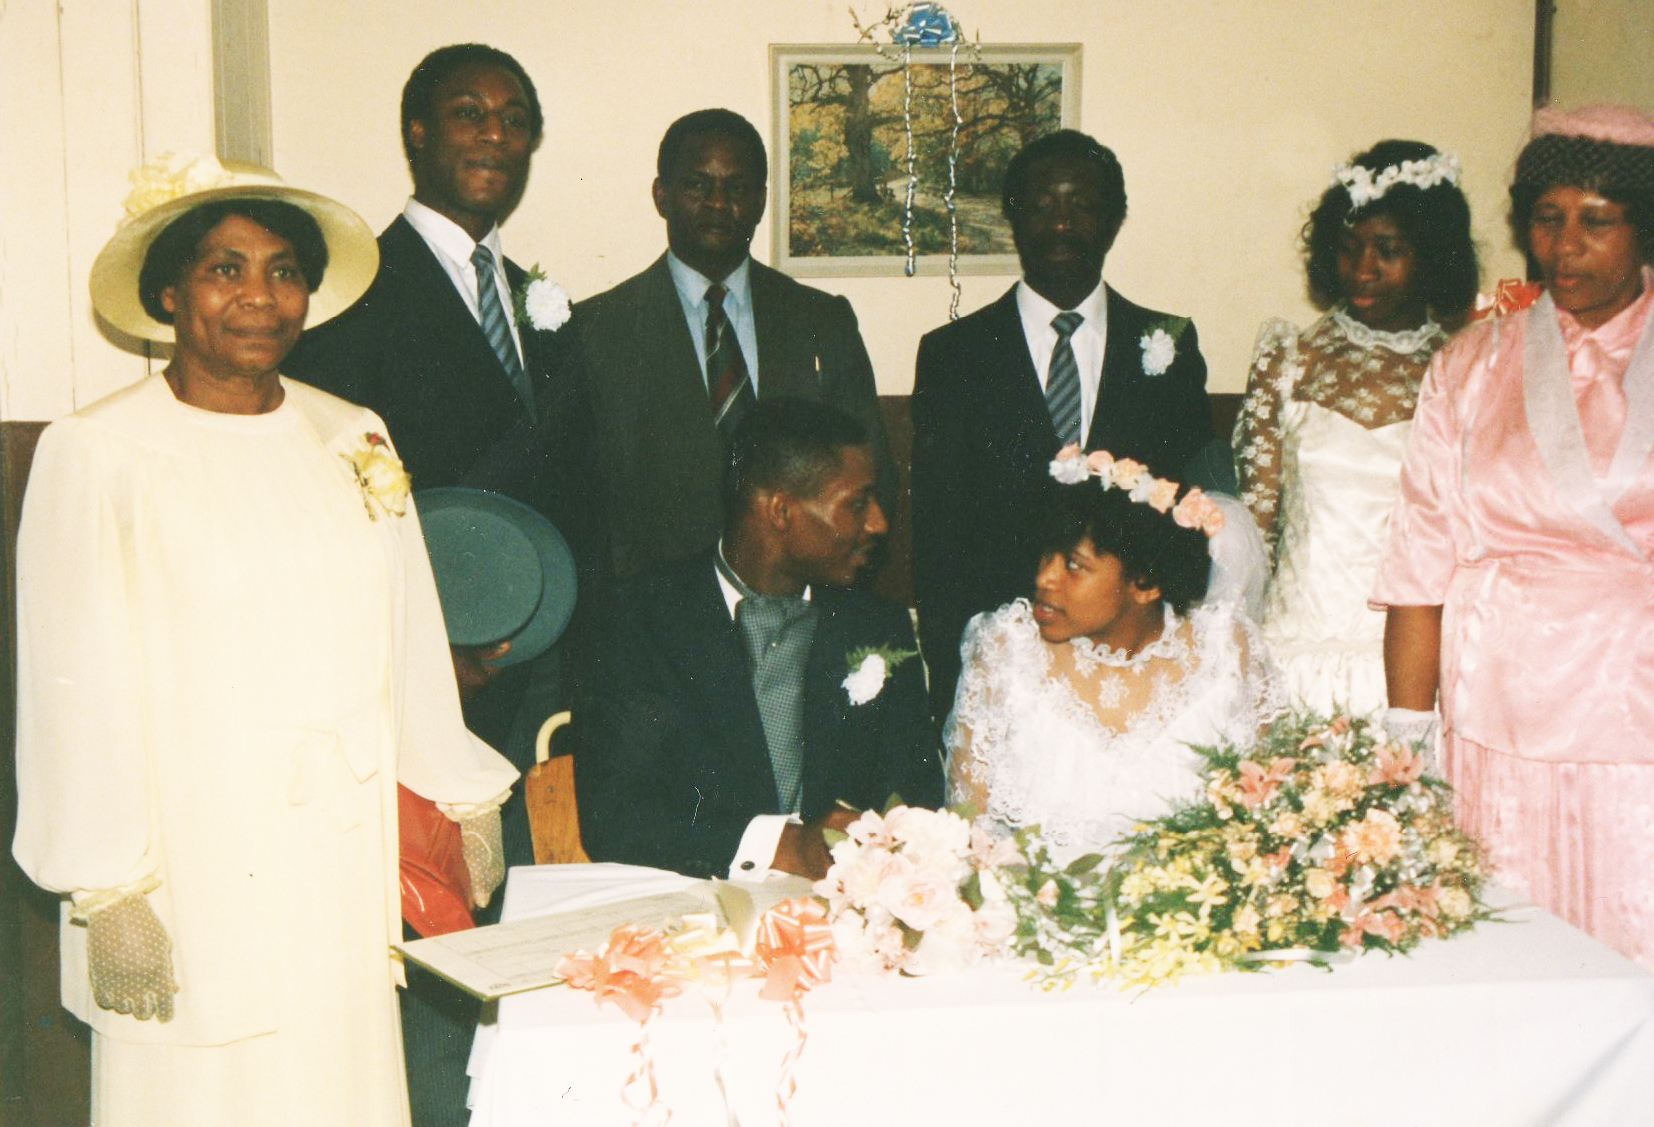 Raymond & Michelle's Wedding 1987